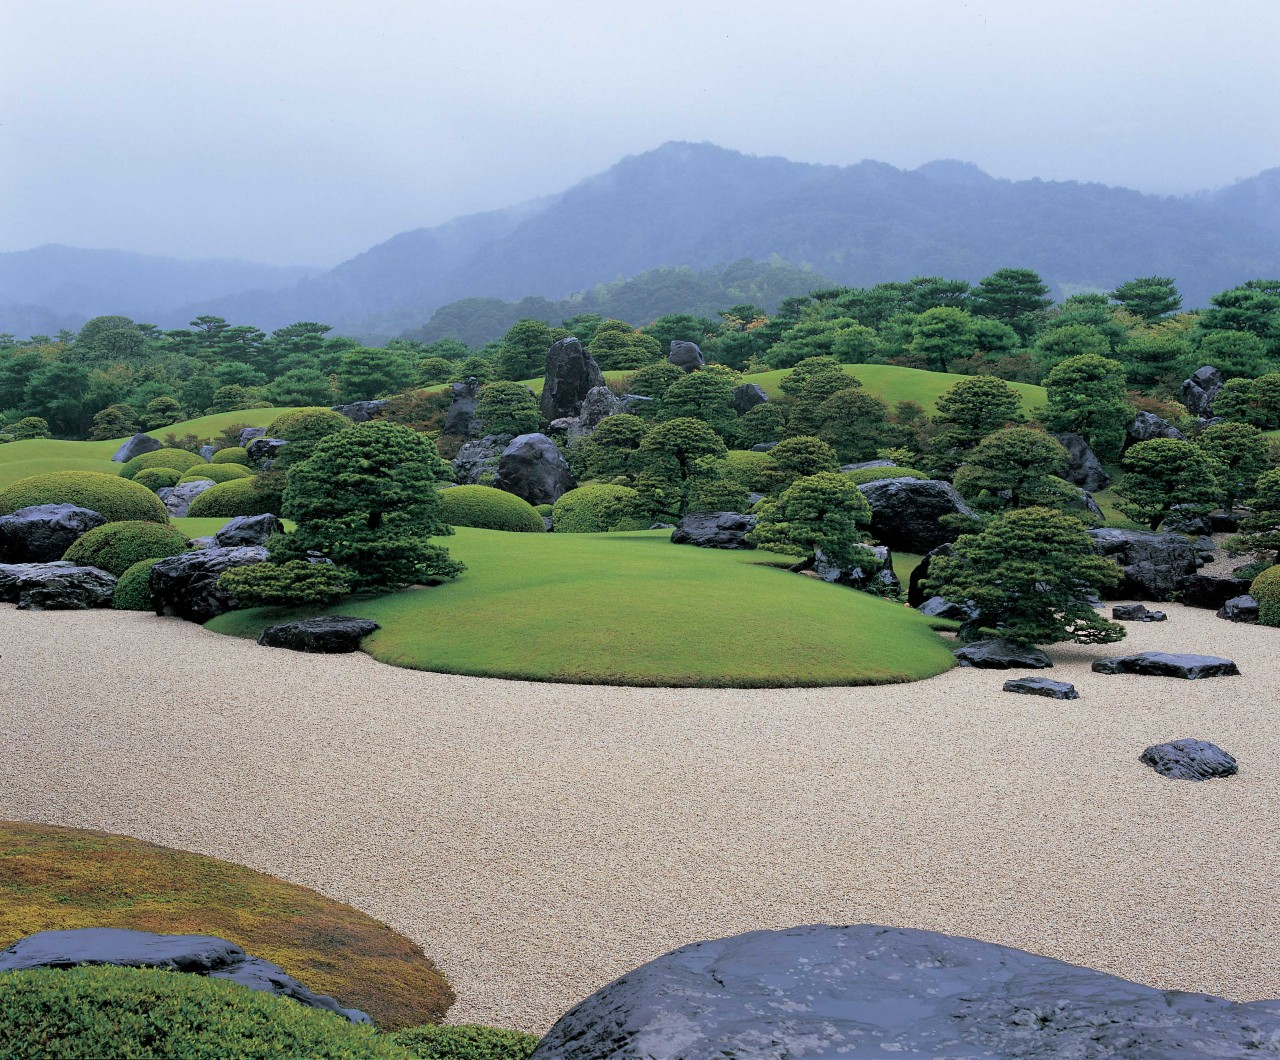 Soothing Garden Scenery in Shimane Prefecture